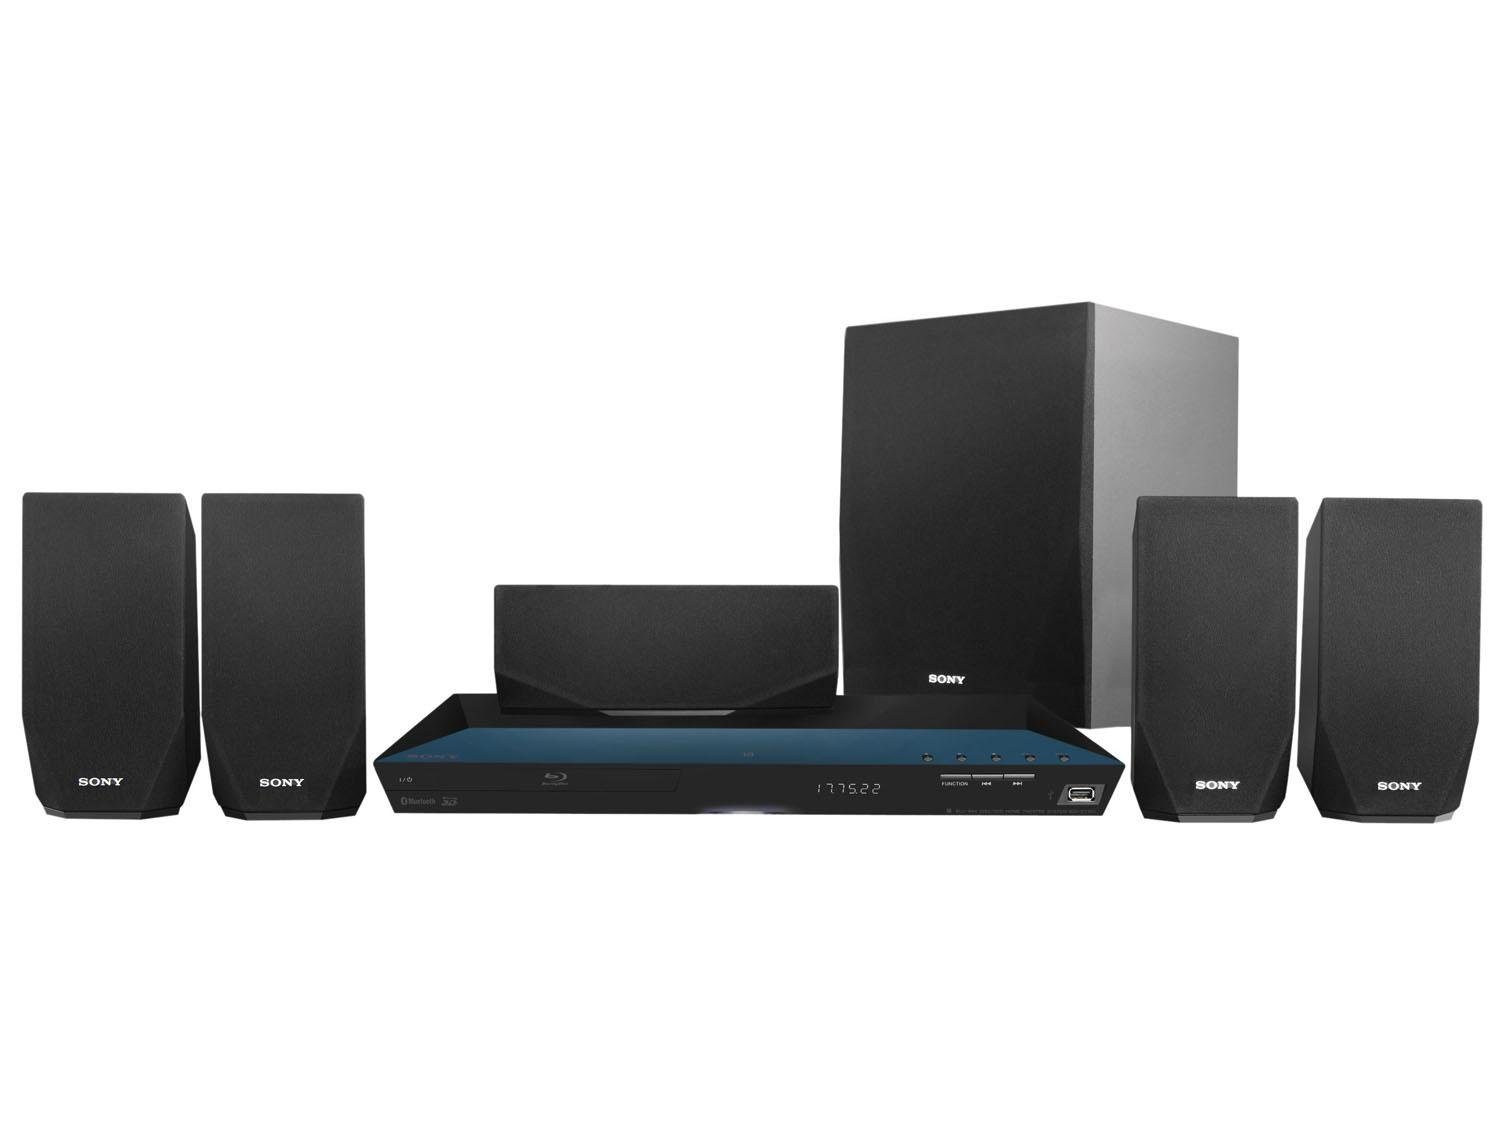 sony home theater 3d blu ray. amazon.com: sony bdv-e2100 3d smart blu-ray home theater system (certified refurbished): audio \u0026 3d blu ray s